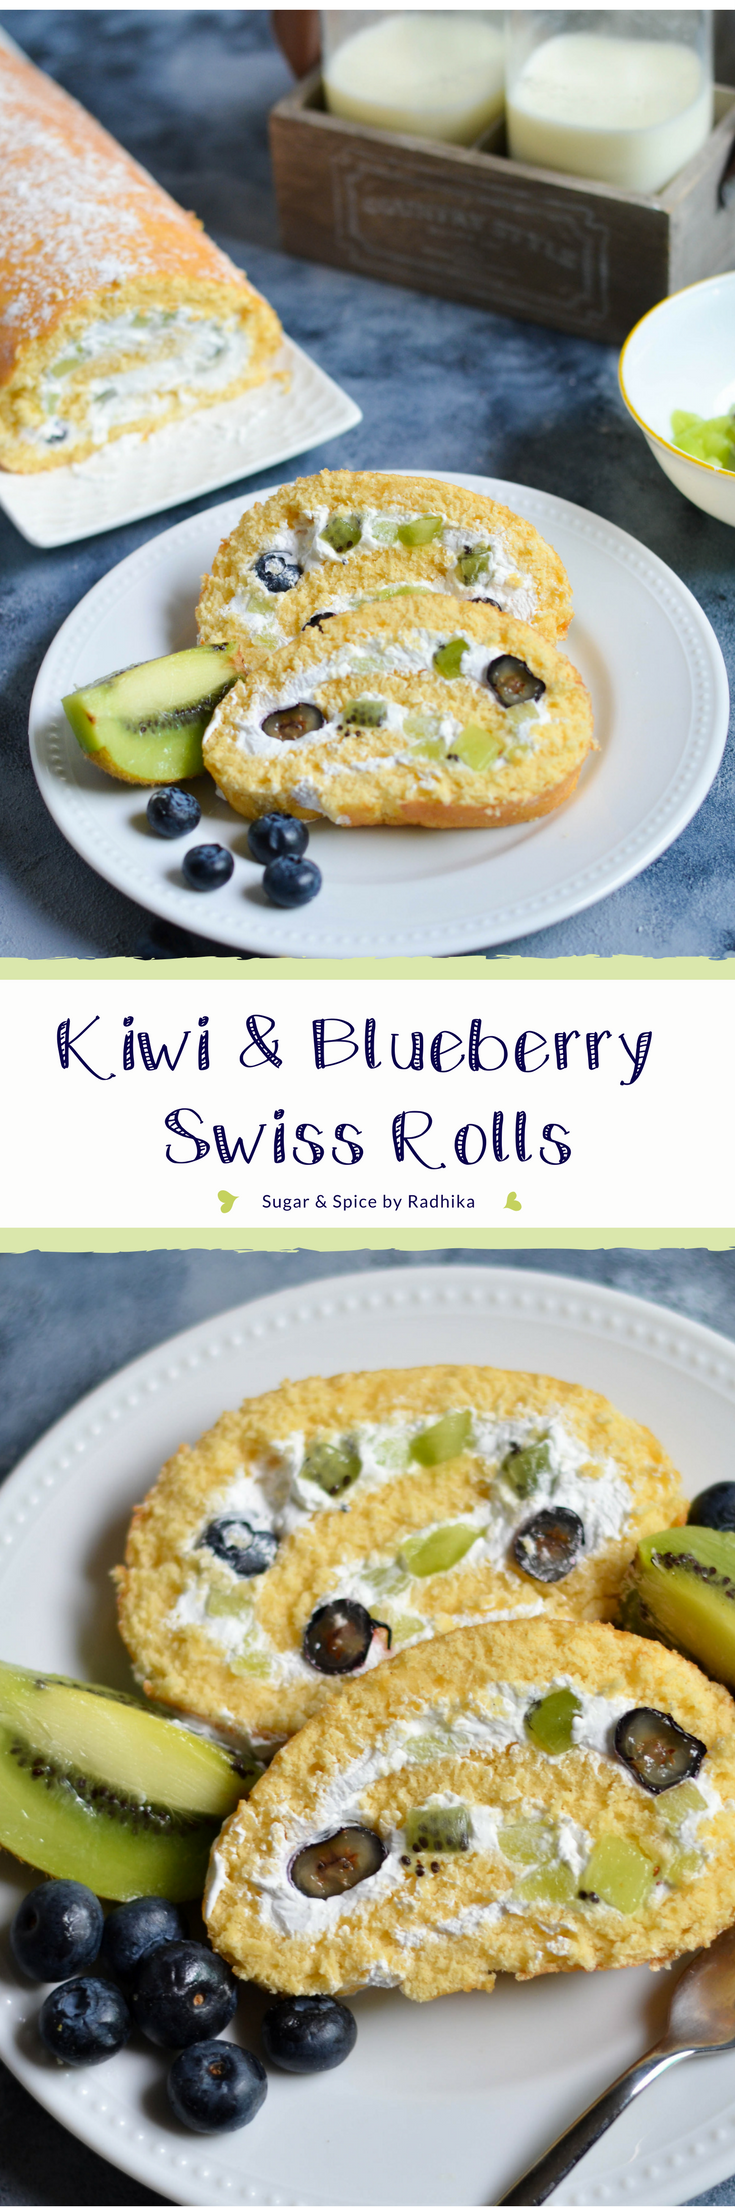 Kiwi and Blueberry Swiss Roll - This light and airy cake filled with fresh kiwis and blueberries is the ultimate dessert! It's really simple to make and takes only about 30 minutes start to finish.